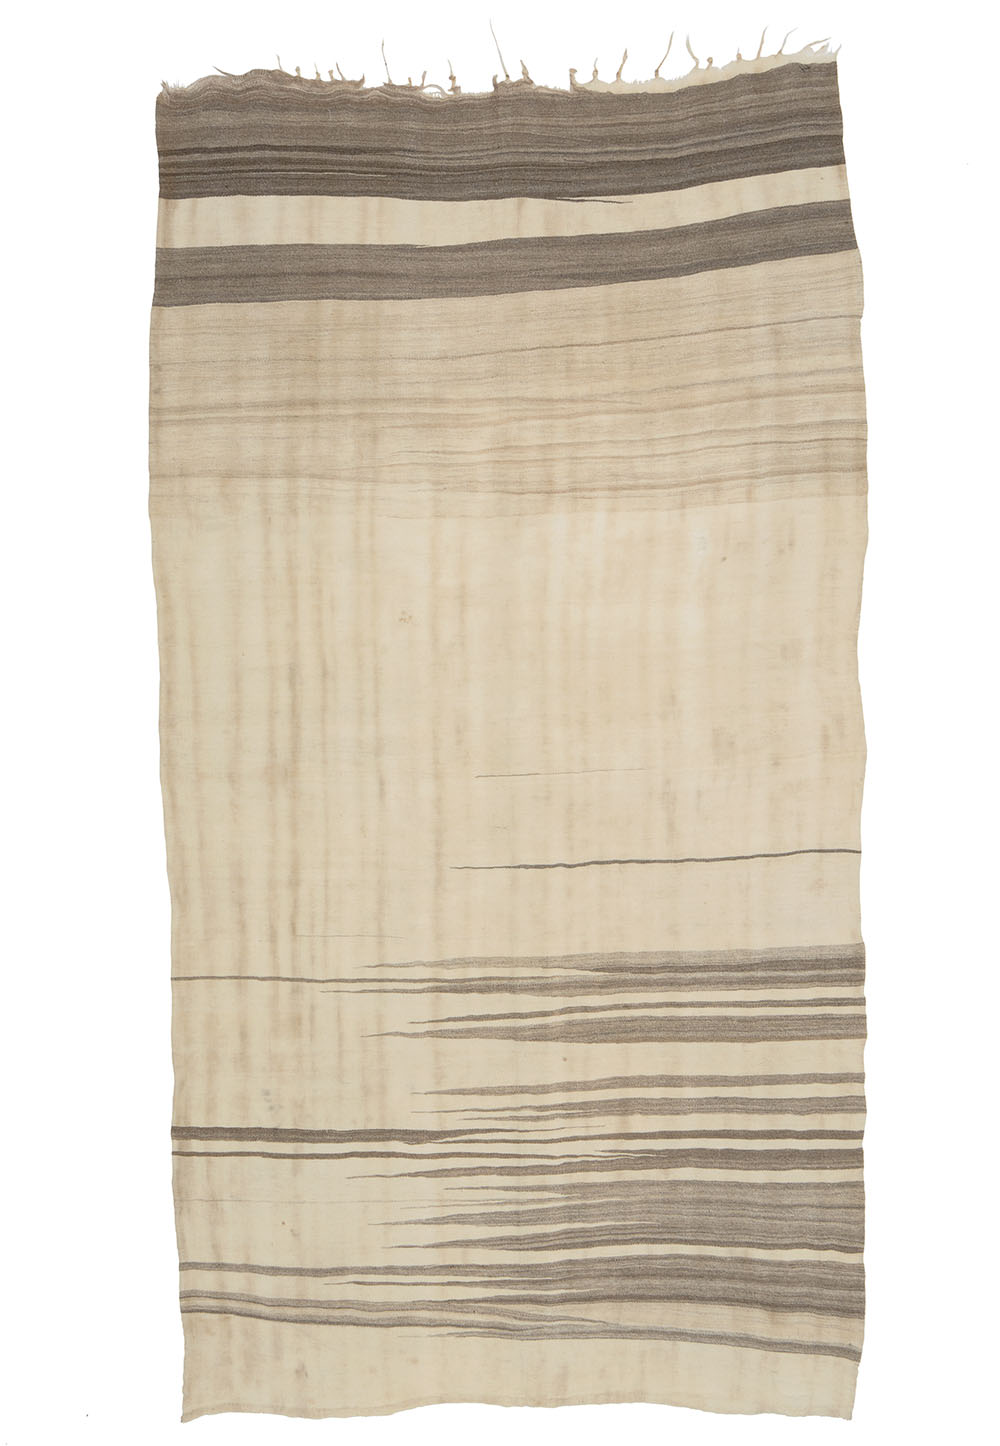 """Berber haik from the Mejjat tribe Anti Atlas, southern Morocco, second half 20th century. 1.10 x 2.20 m (3' 7"""" x 7' 2""""). Alexandra Sachs collection. In this textile the weaver has concentrated on a design that does not rely on colour to create a distinctive strong, graphic quality. The focus is on the undyed wool in various shades and on the simplified pattern repertoire used in everyday garments of the Mejjat region. These aesthetic principles allow for an unadorned design resulting in an almost modern contemporary appearance. The open field, with stripes and peaks running across it, has an effect not unlike the diffuse watercolors of J. M. W. Turner, defining vague outlines of a horizon. An endless range of shades adds depth and vividness to the light background. One can say that the entire composition is a virtuoso play with levels of density. However, the essence of this textile lies in the pure wool, the formal austerity and the rustic 'worn over time' patina. This haik resembles the headscarfs of the Ait Abdellah, with their unmistakable minimalist compositions, of which the best examples feature black peaks in the dark section (HALI 120, p. 79). There could clearly be a connection, since the Ait Abdellah are not situated far away from the Mejjat tribe. Ultimately this haik is one of very few examples representing the zenith of its genre"""